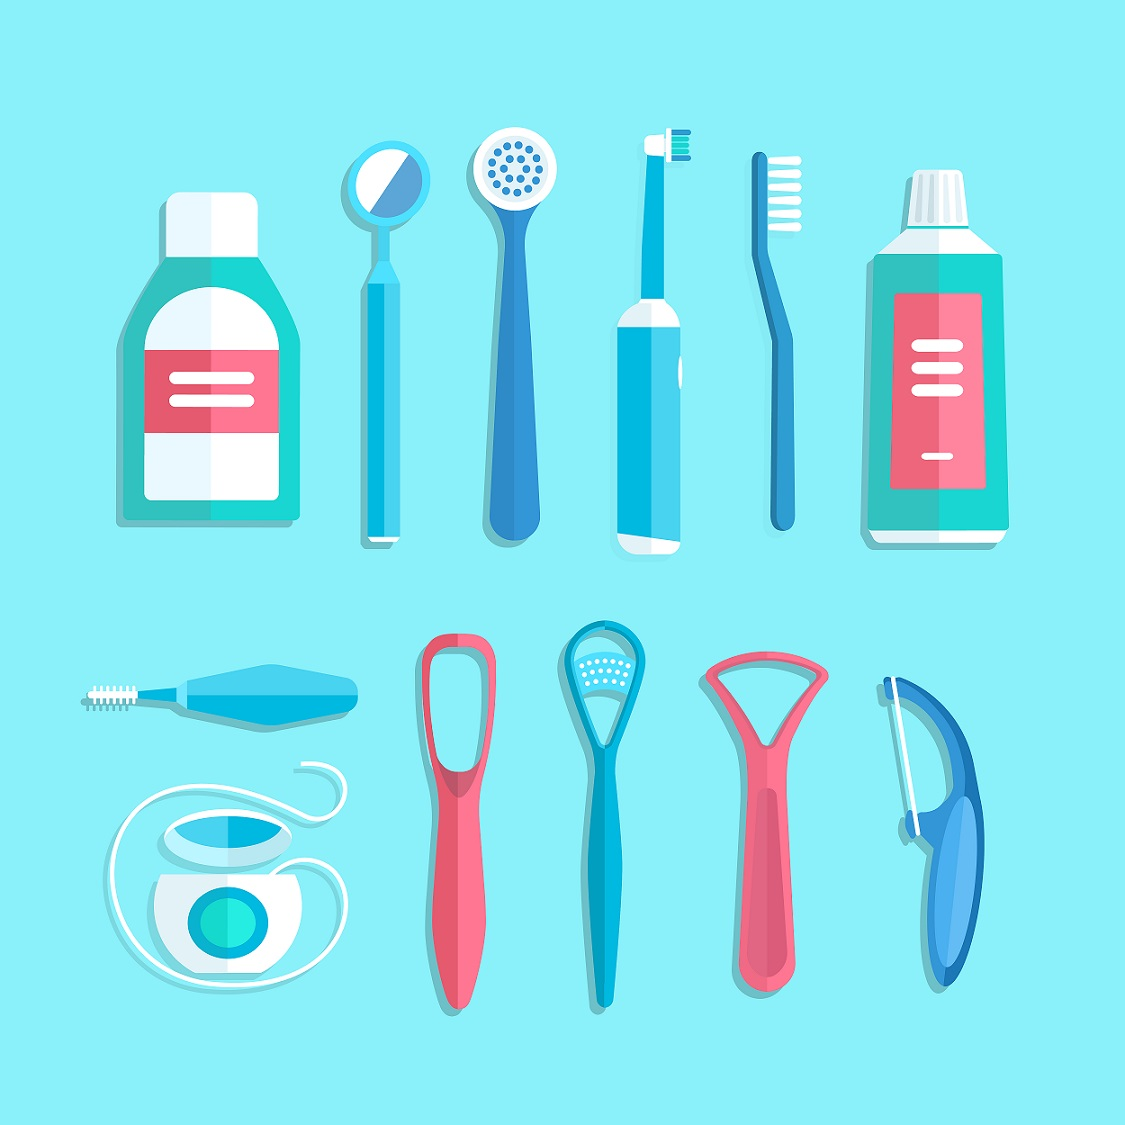 Manchester Dental Hygiene and Therapy